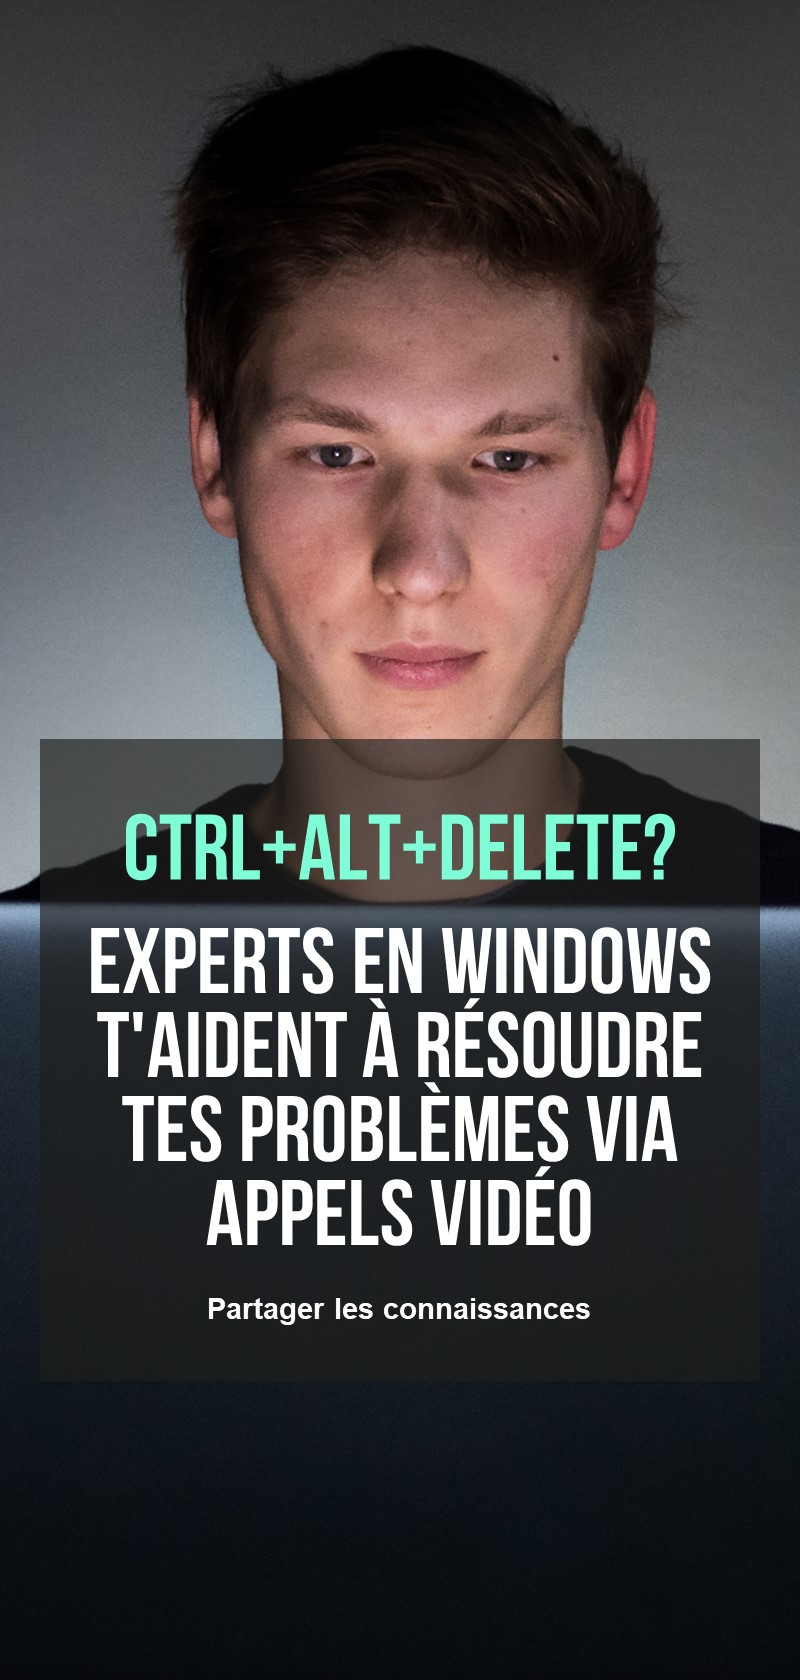 Experts Windows pour l'assistance à distance